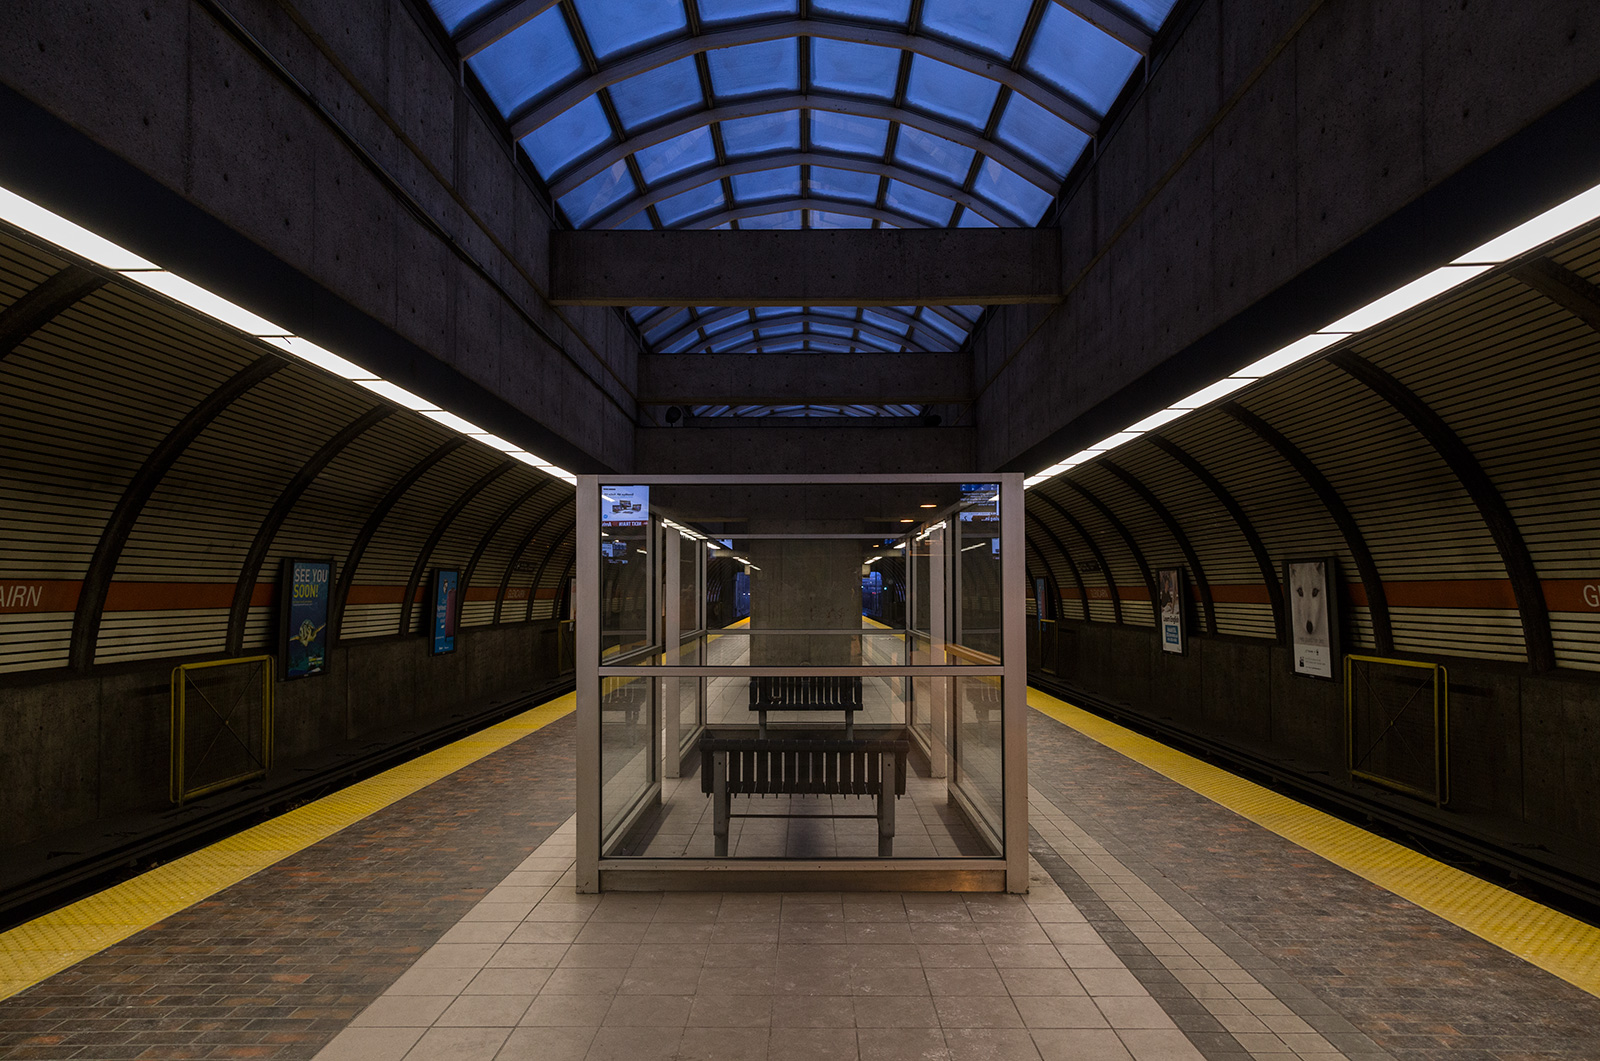 Photo 20131212. The often overlooked and rarely visited Glencairn Subway station, Toronto